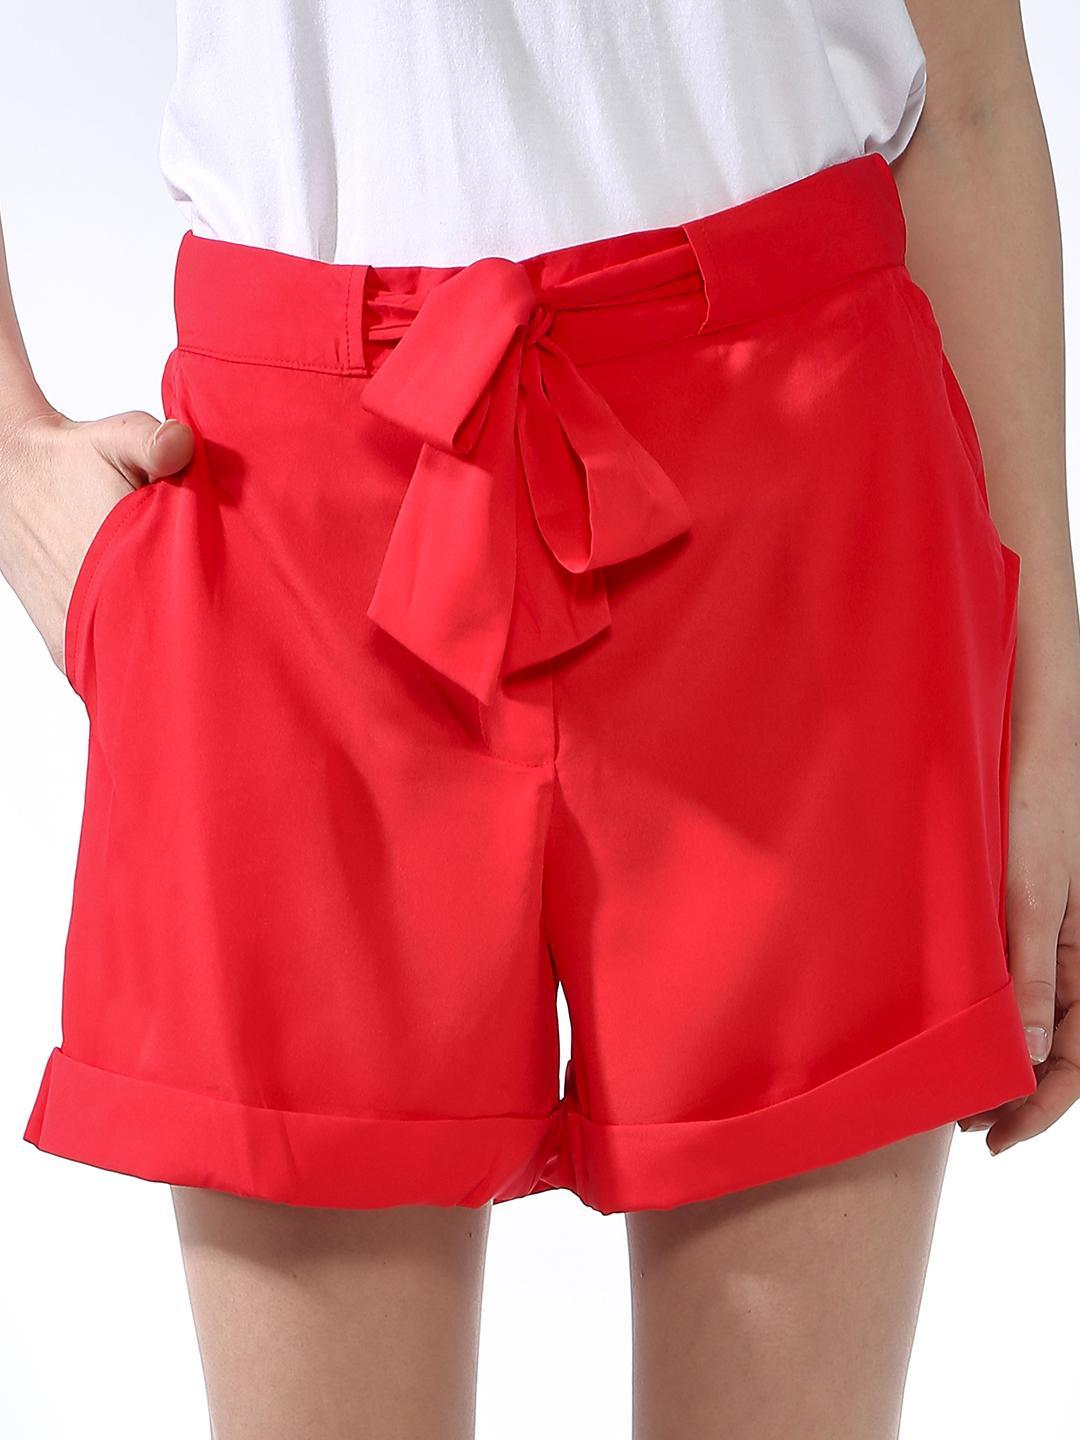 Oxolloxo Red Tie-Up Casual Shorts 1